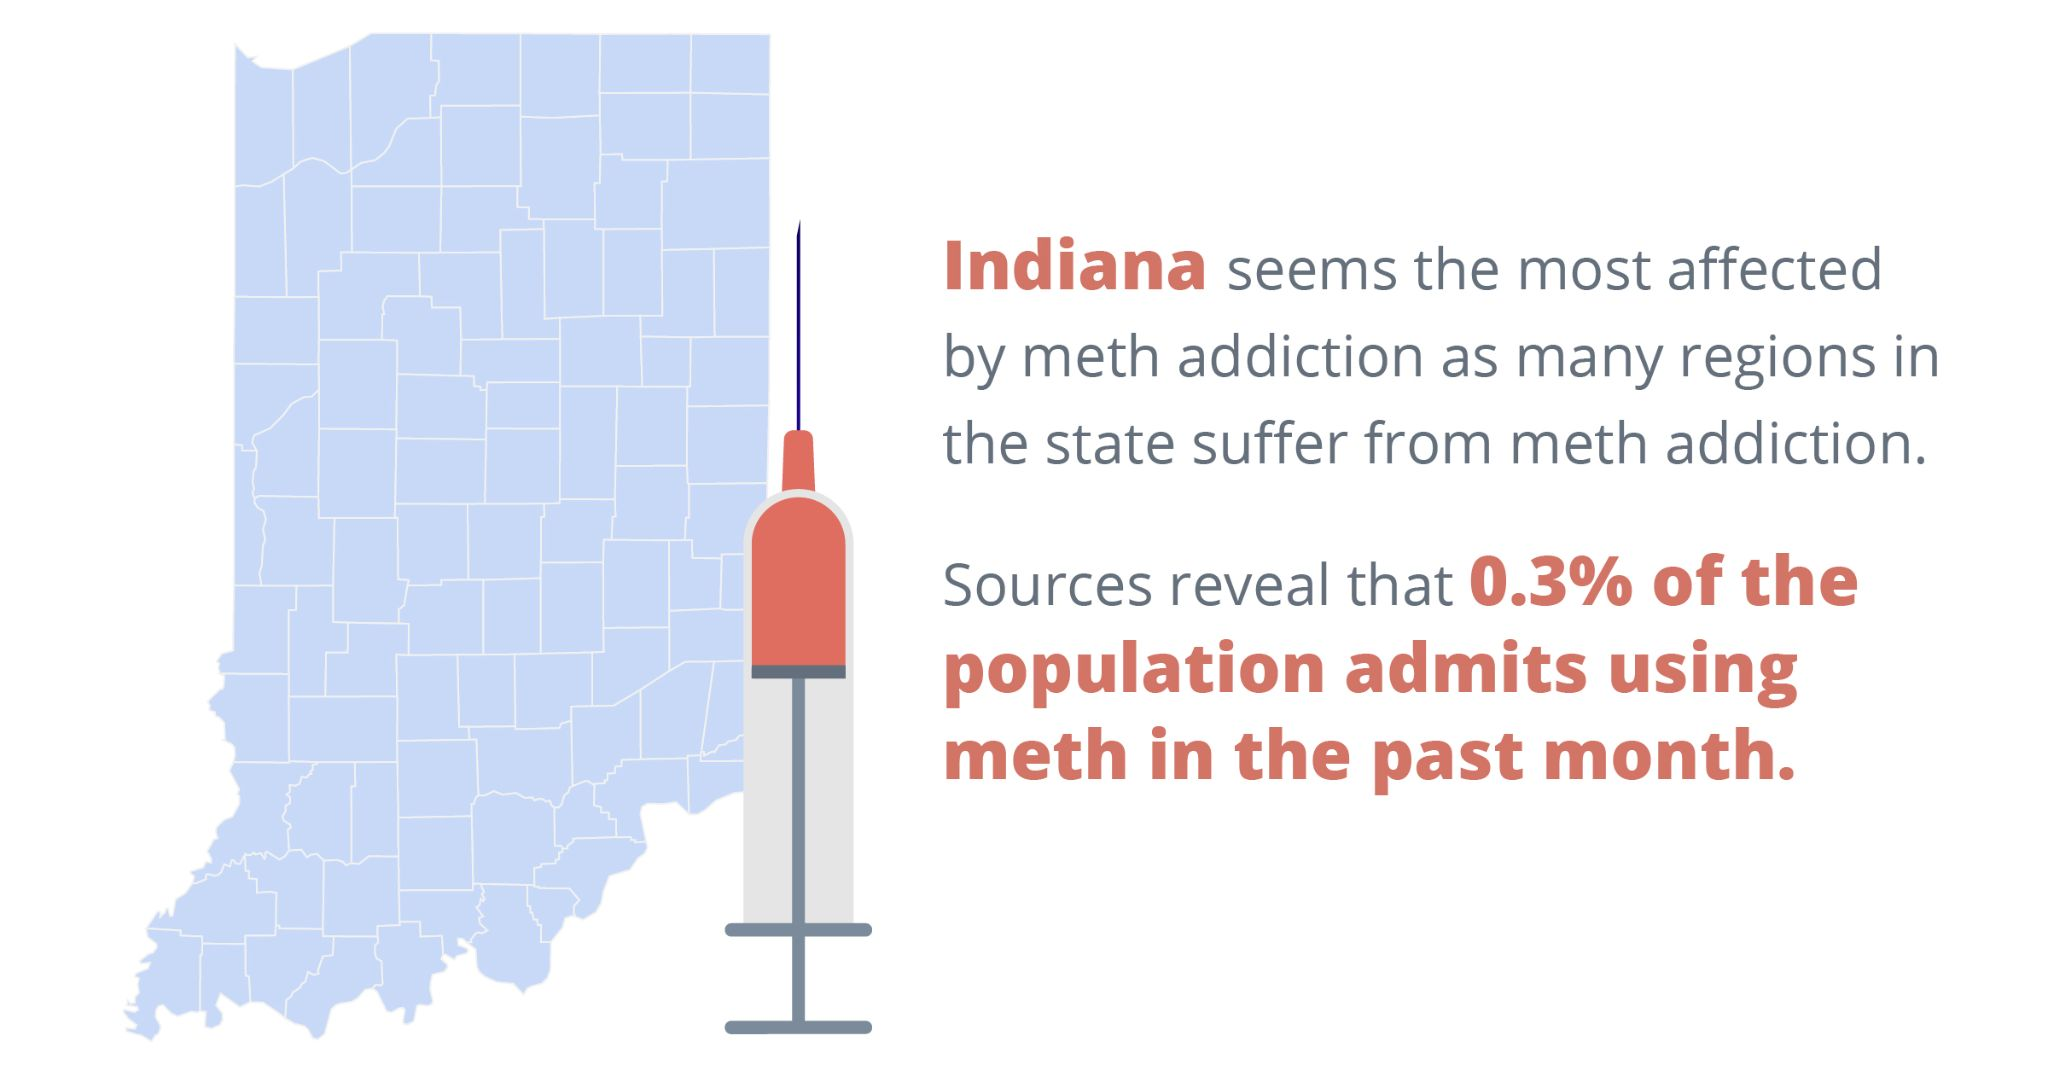 Indiana seems the most affected by meth addiction as many regions in the state suffer from meth addiction. Sources reveal that 0.3% of the population admits using meth in the past month.